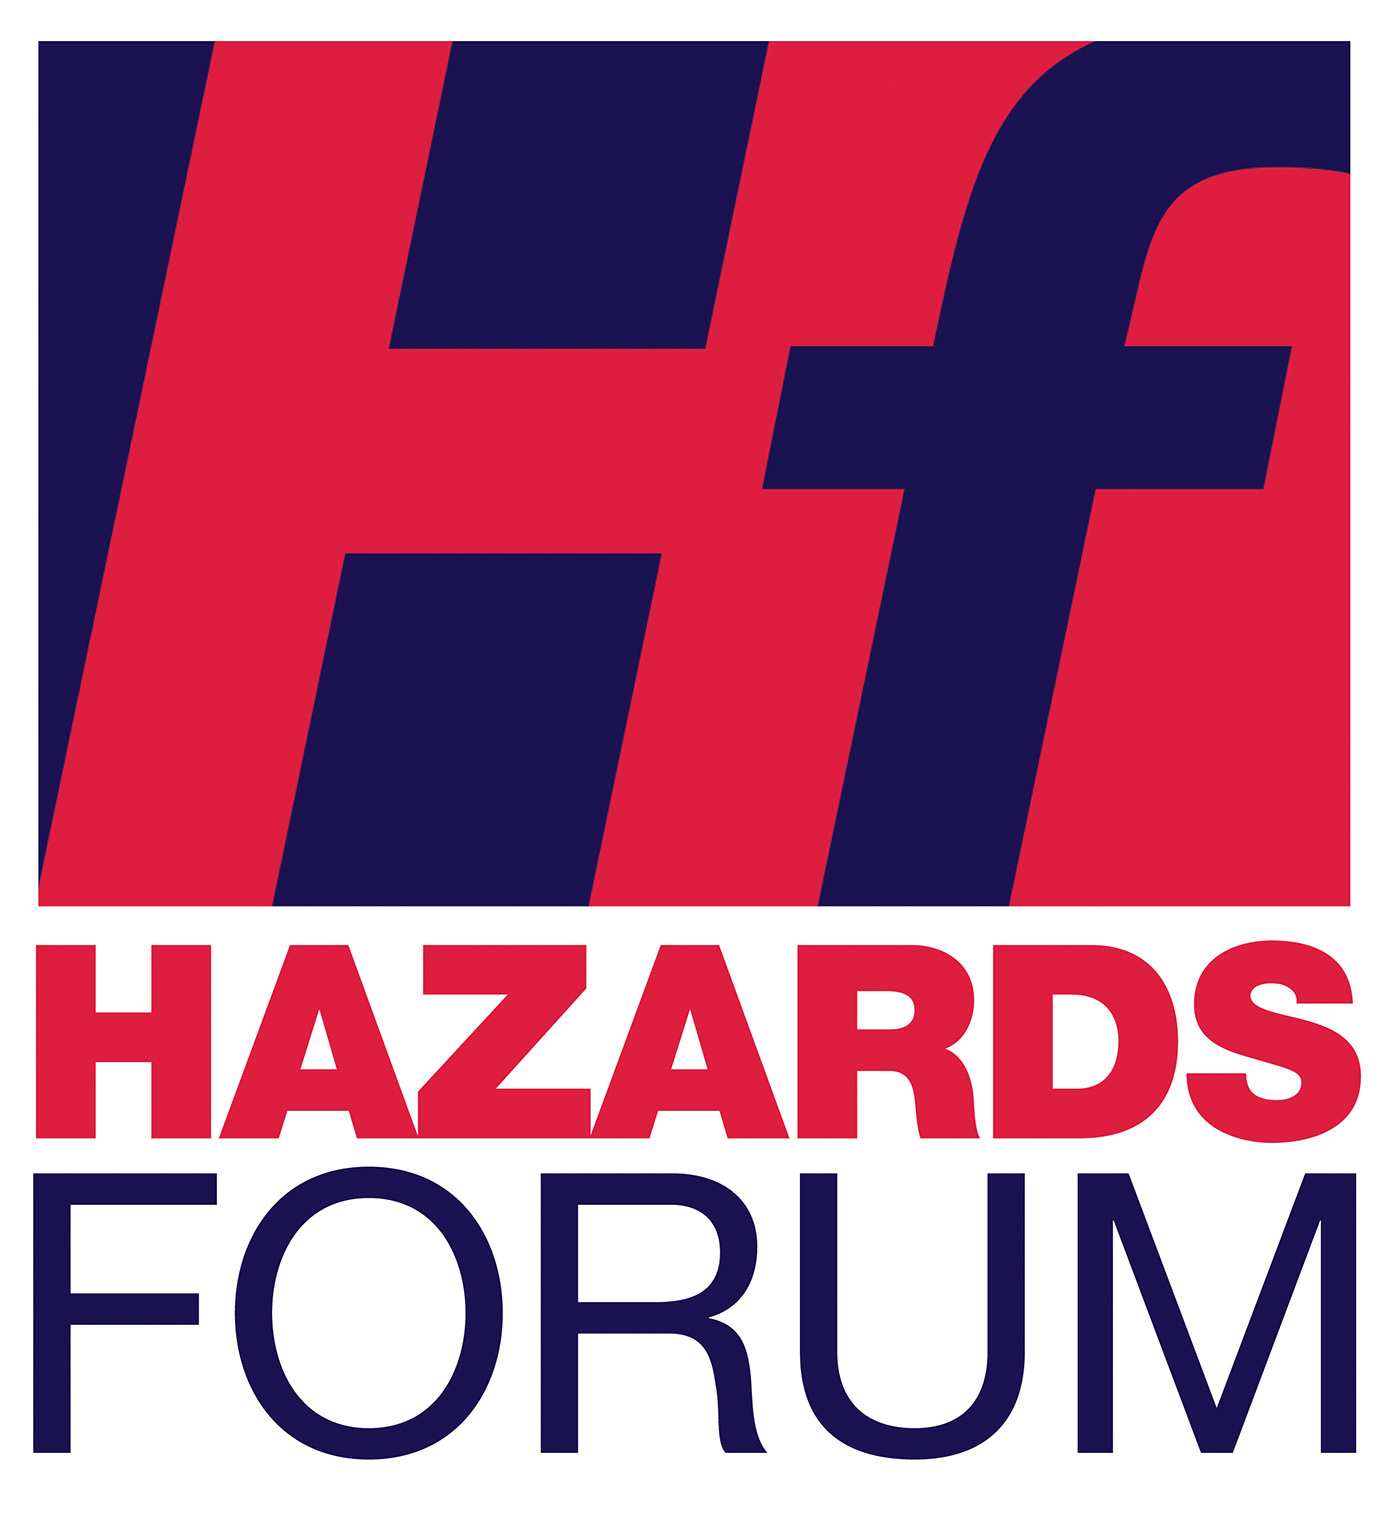 Hazards Forum